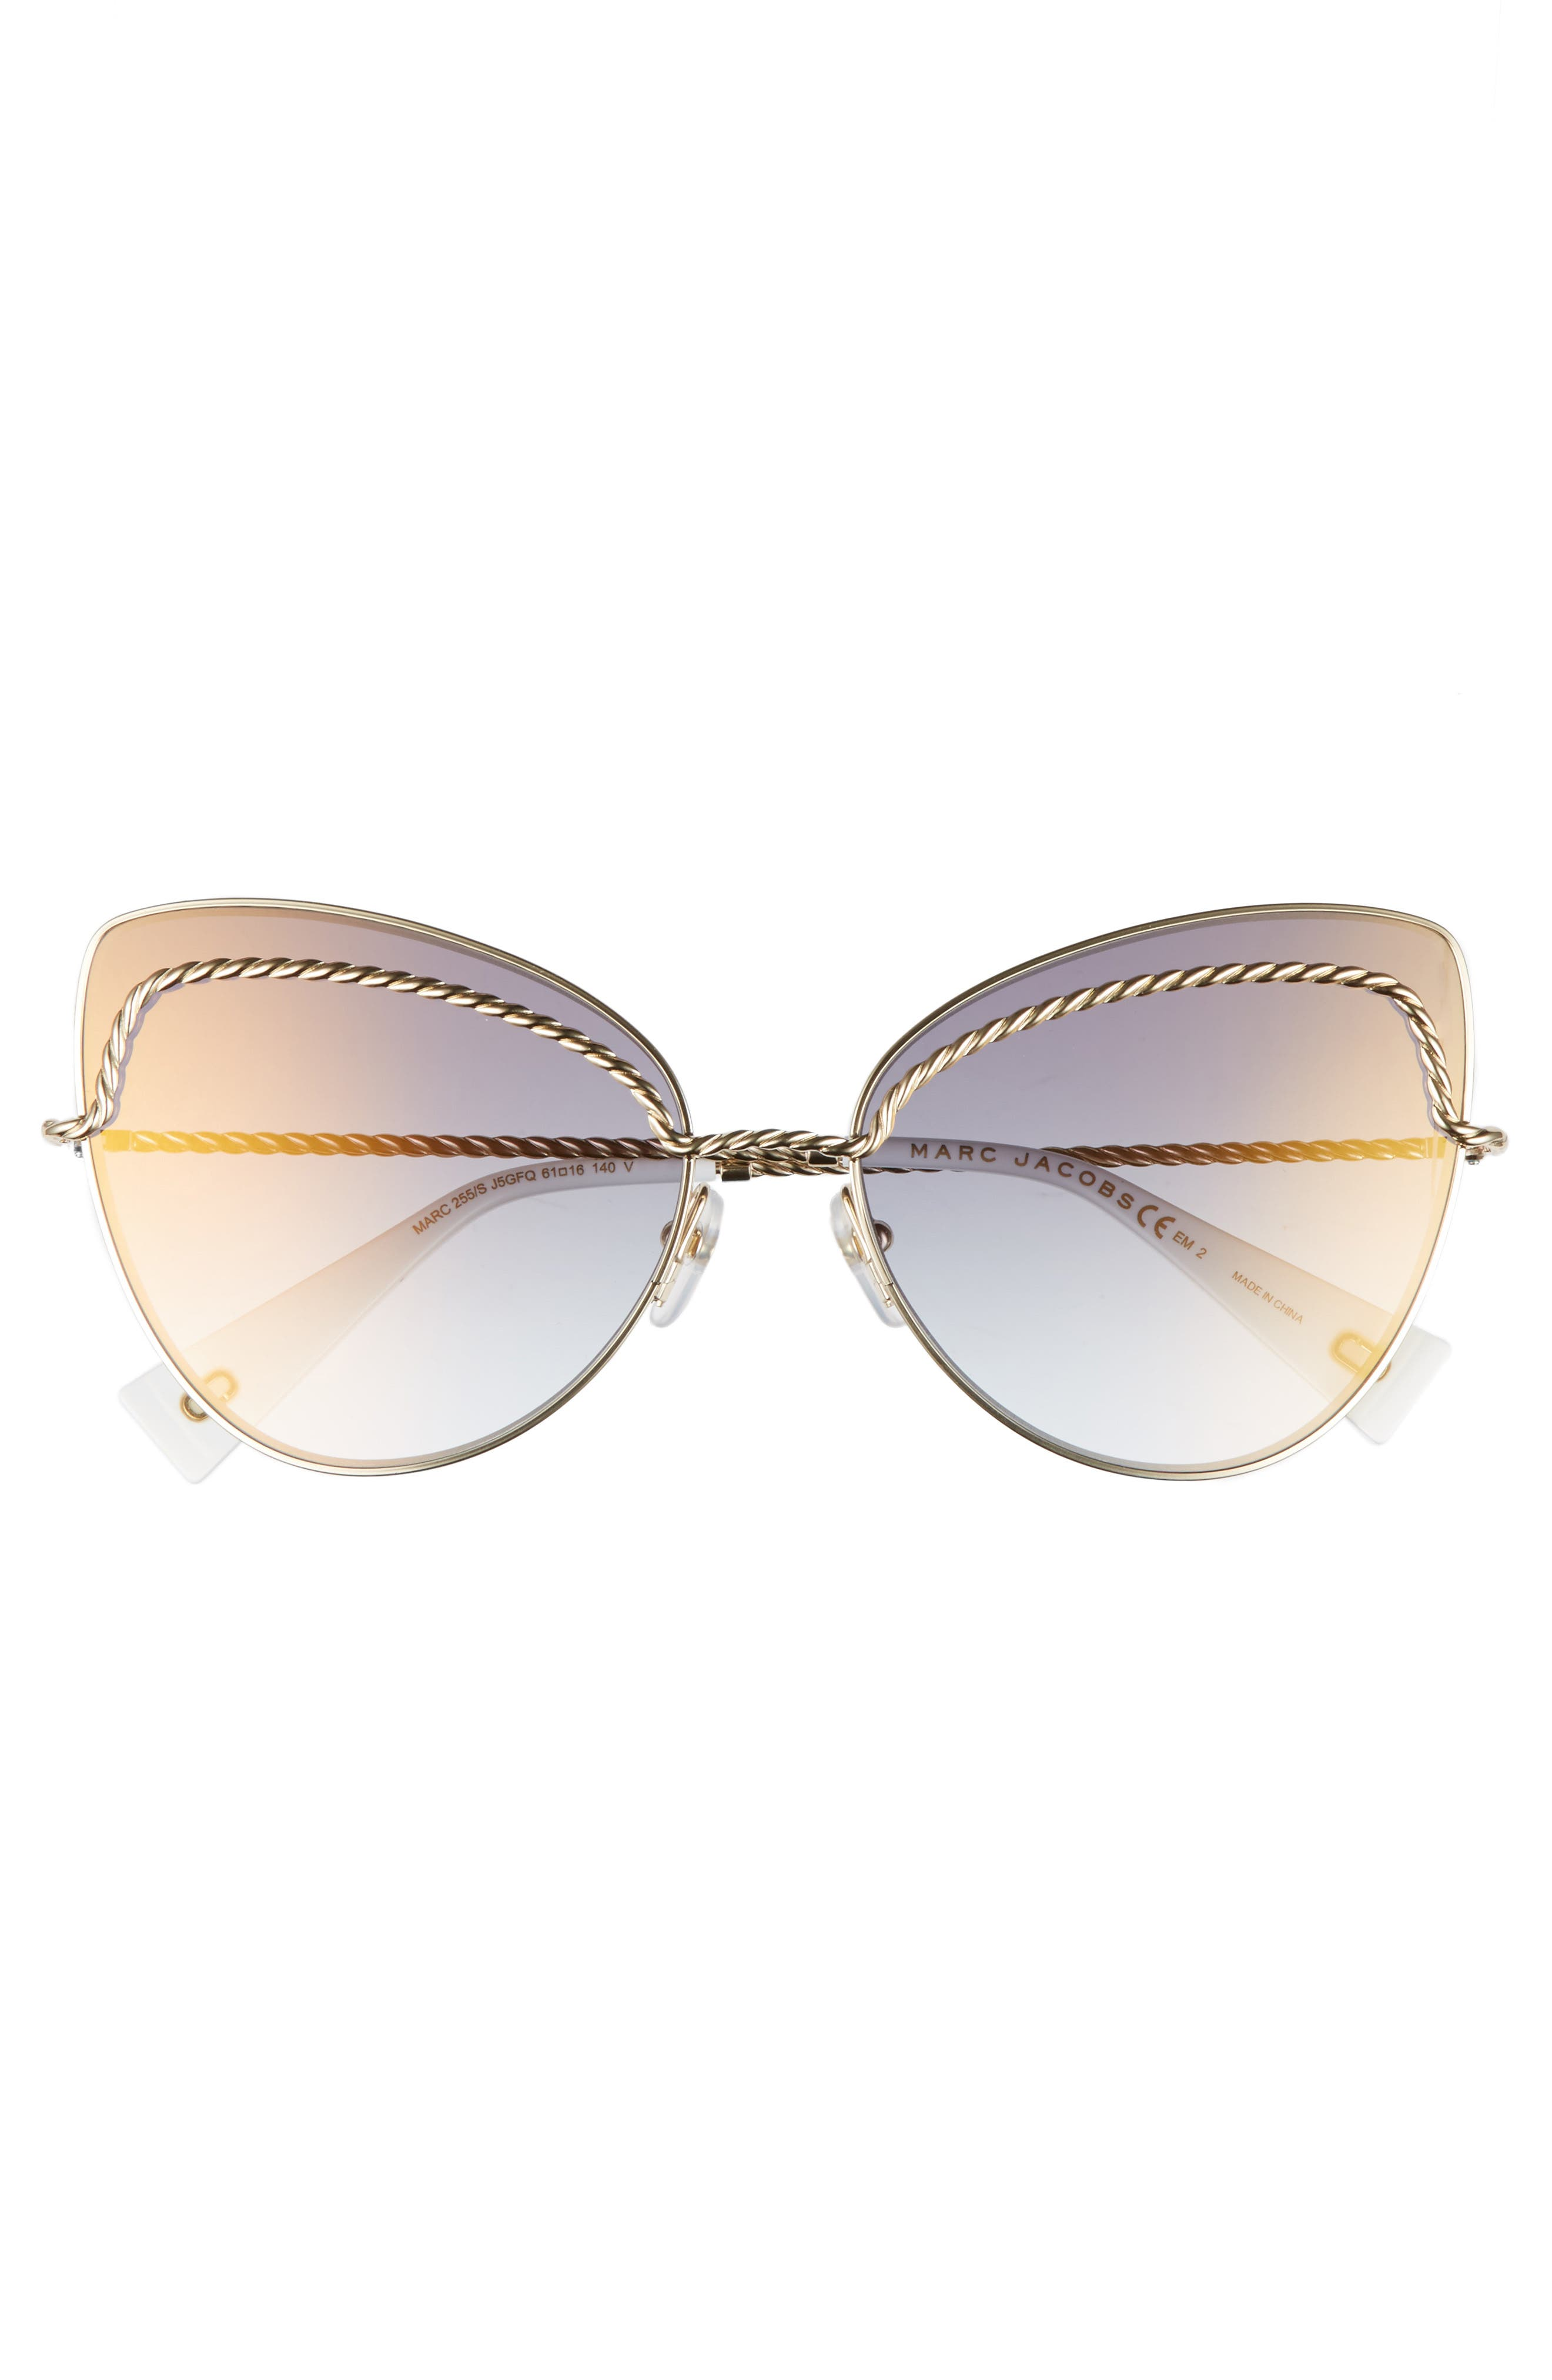 61mm Butterfly Sunglasses,                             Alternate thumbnail 6, color,